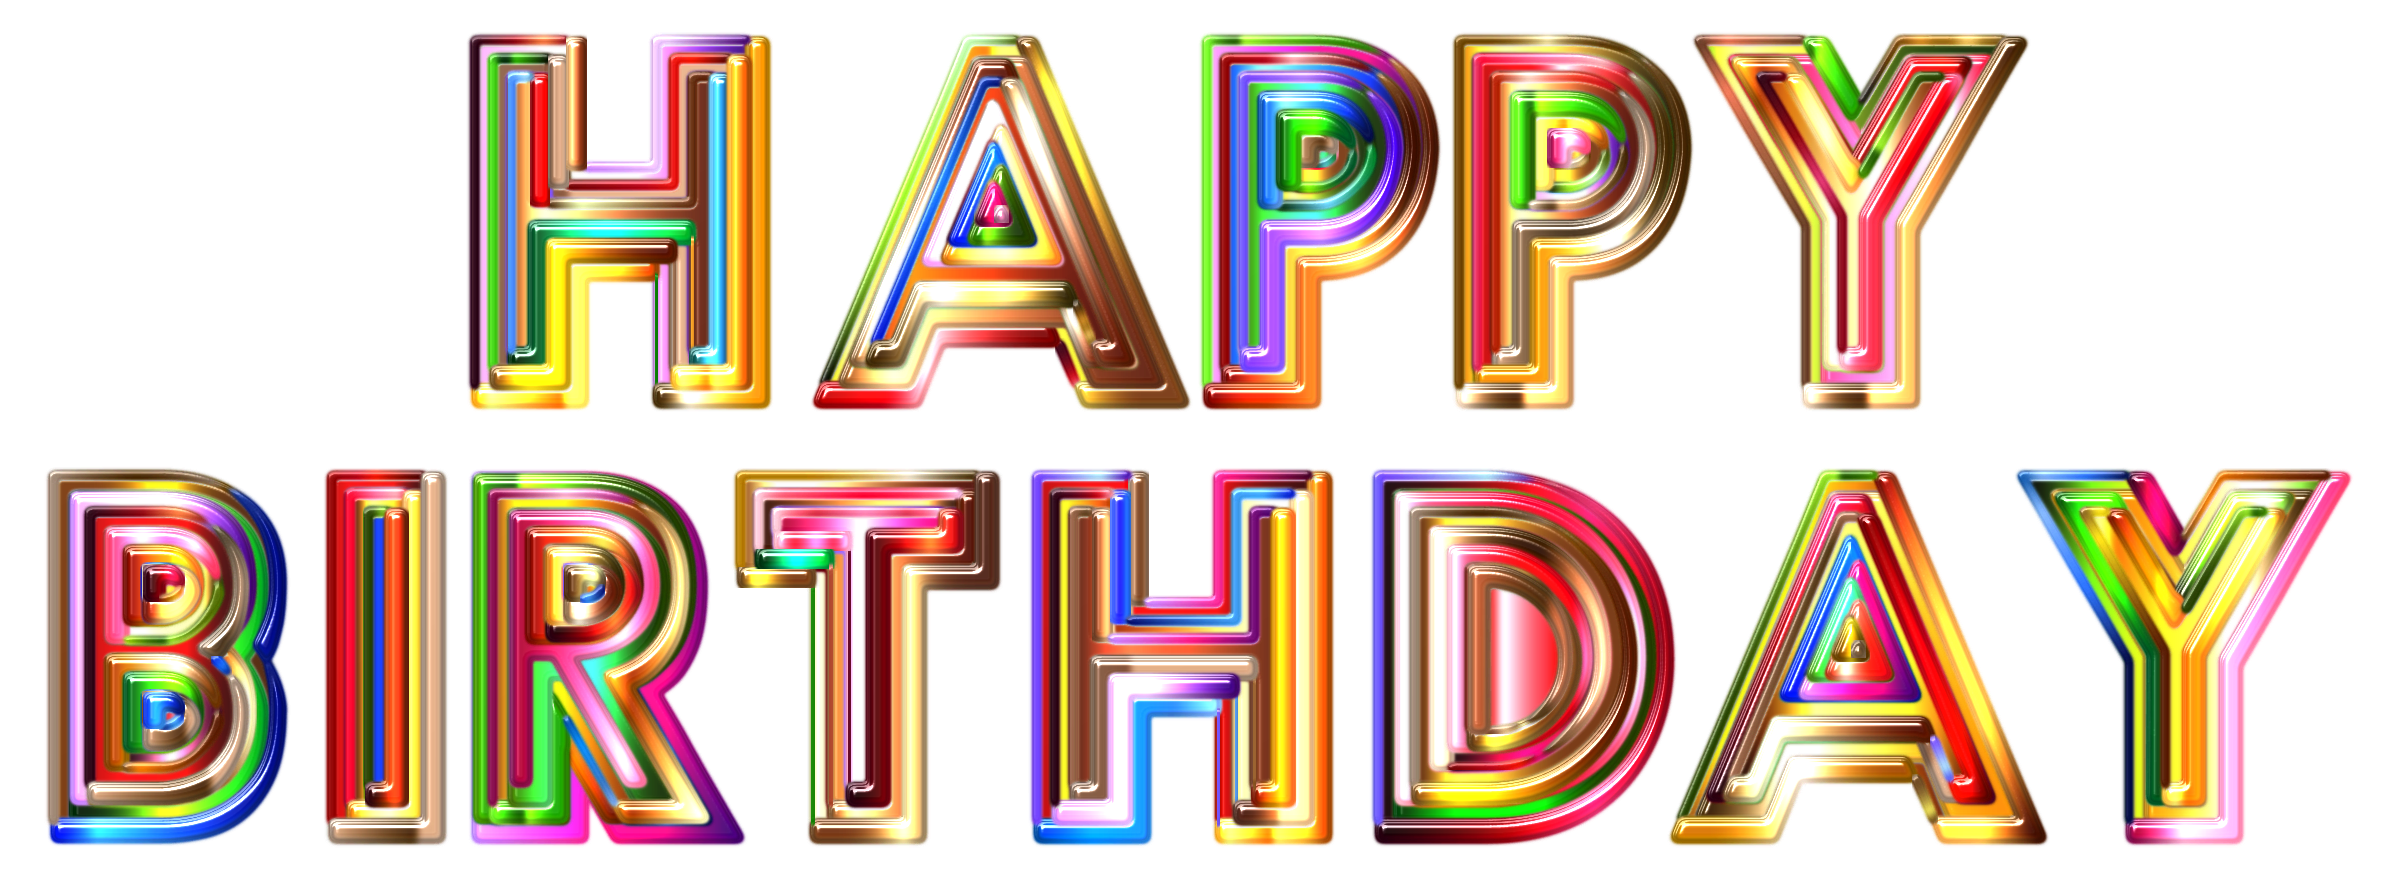 Icon clipart web icons. Png happy birthday picture transparent